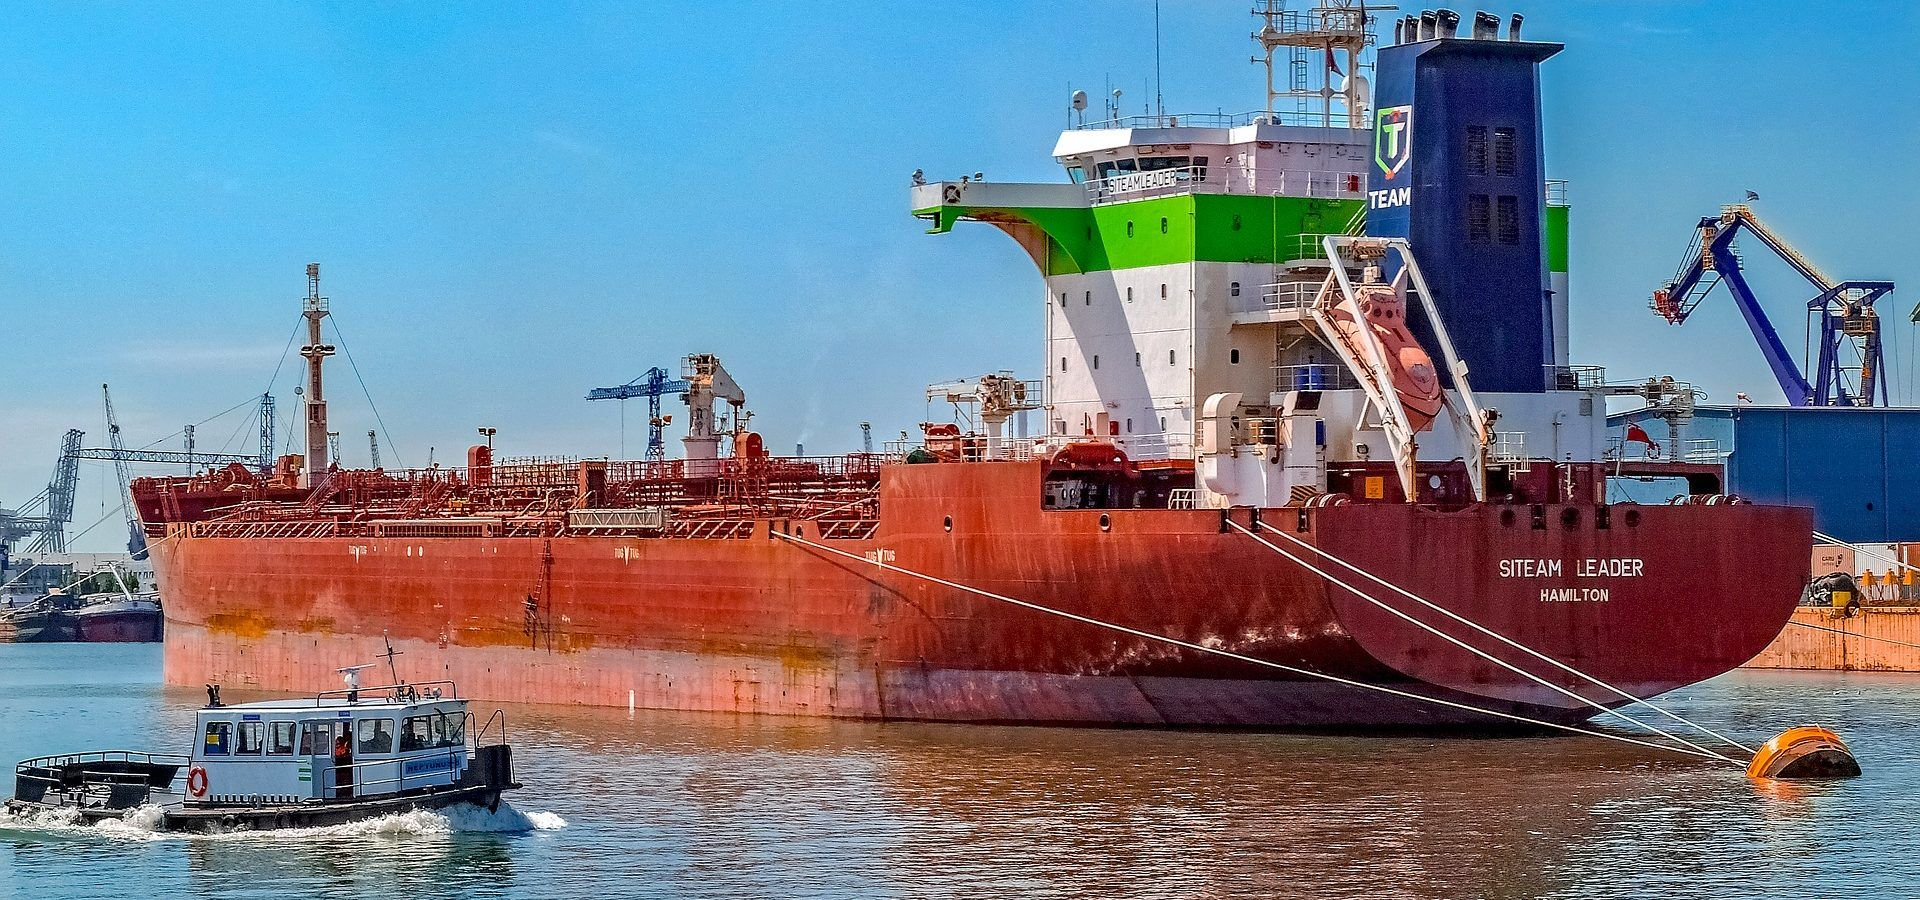 LNG gas will be shiped more frequently to the European Union despite protests